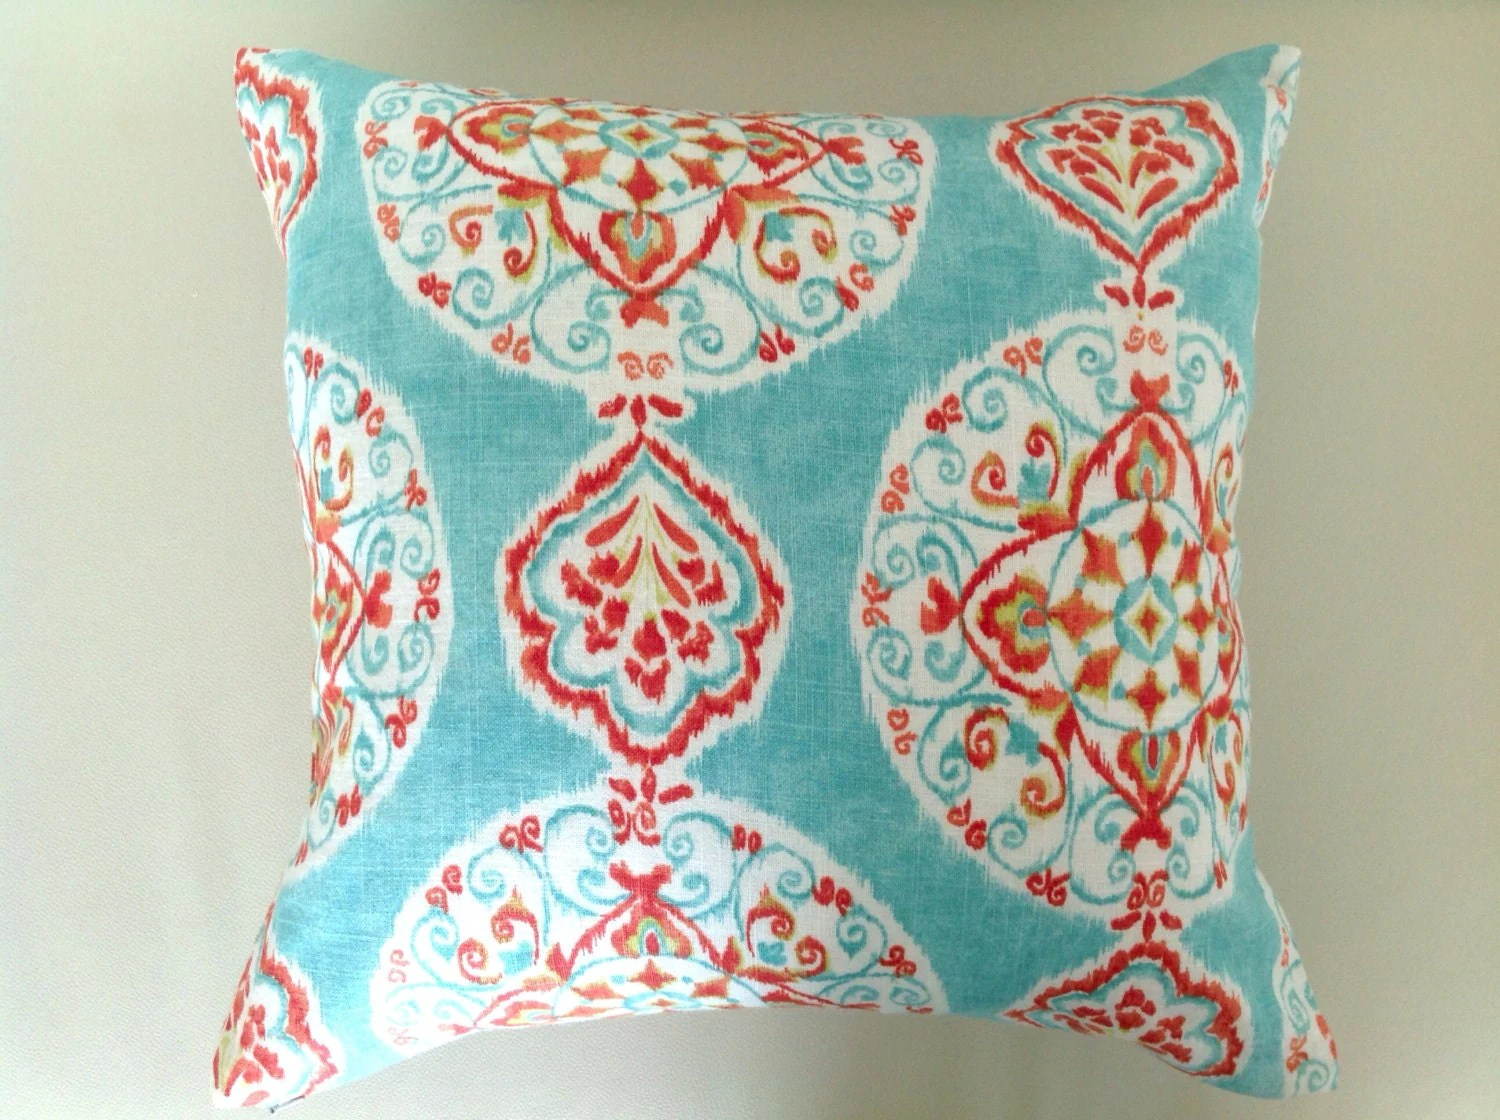 Boho Cushions Australia Linen Cushions Boho Pillows On Sale Boho Cushion Bohemian